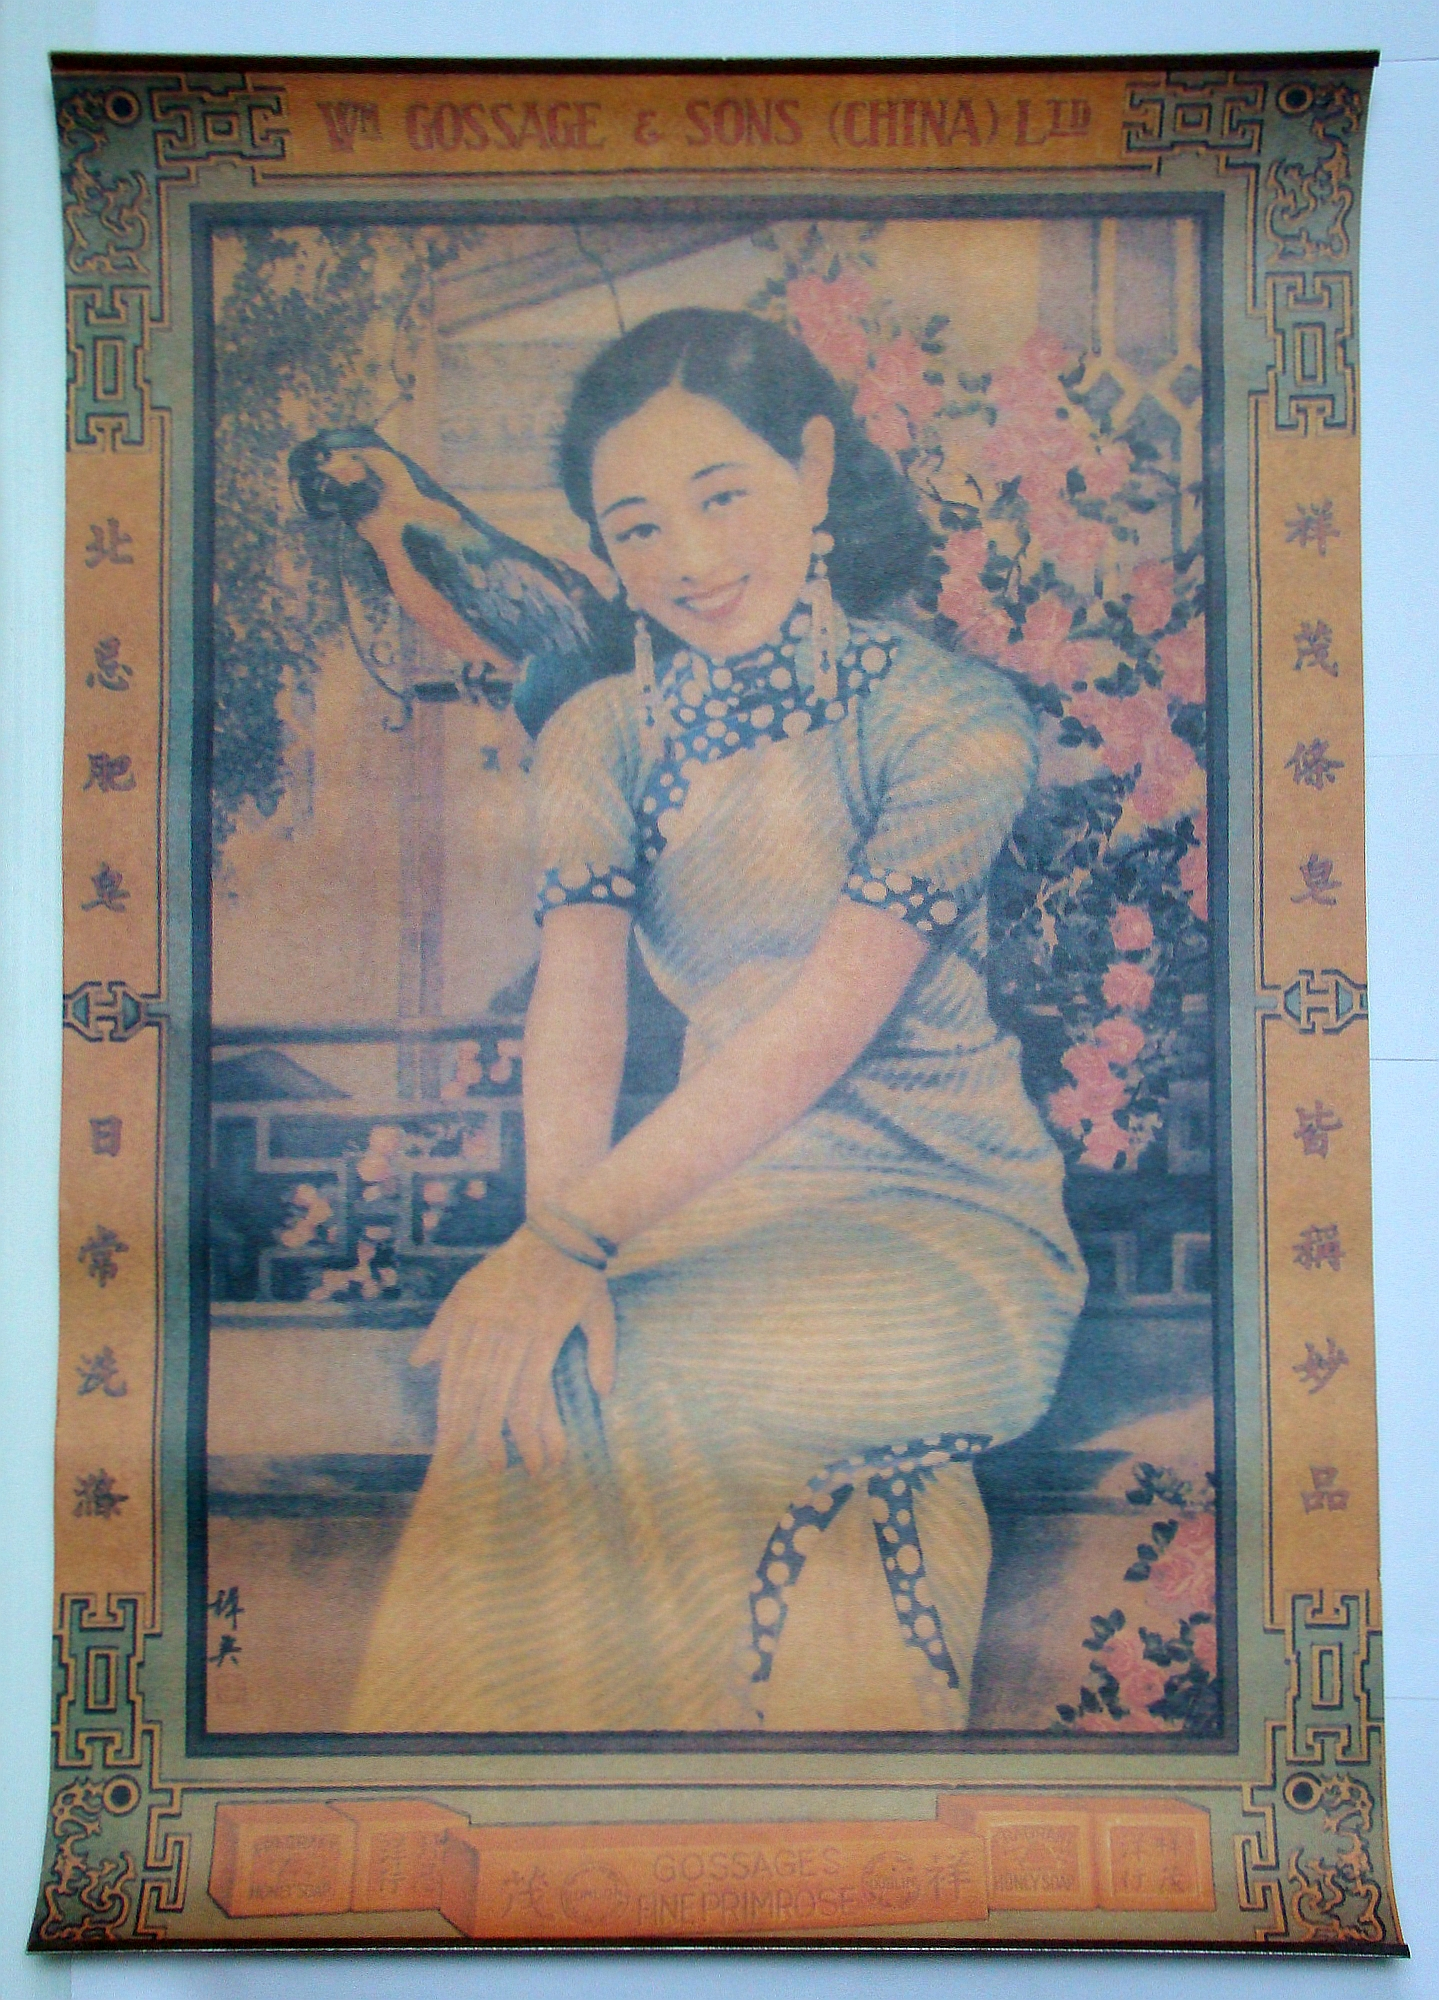 Image for Chinese / Shanghai Replica Advertising Poster for the Personal Soaps of Wm. Gossage & Sons (China) Ltd.